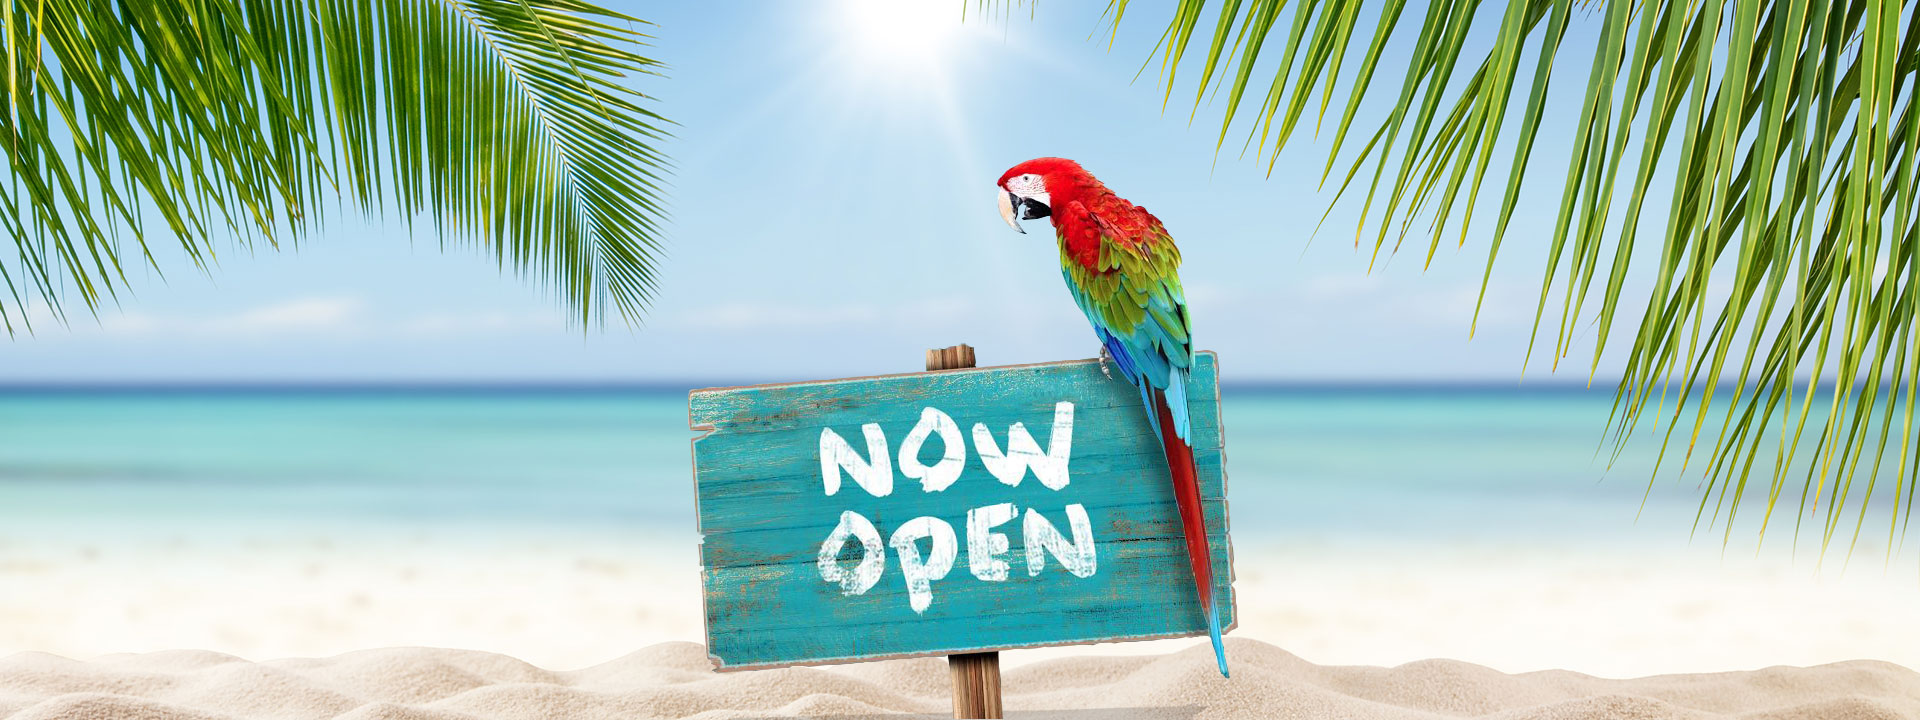 5 oClock Somewhere Bar & Grill Aruba The southernmost Caribbean outpost of our 5 oClock Somewhere brand is now open!